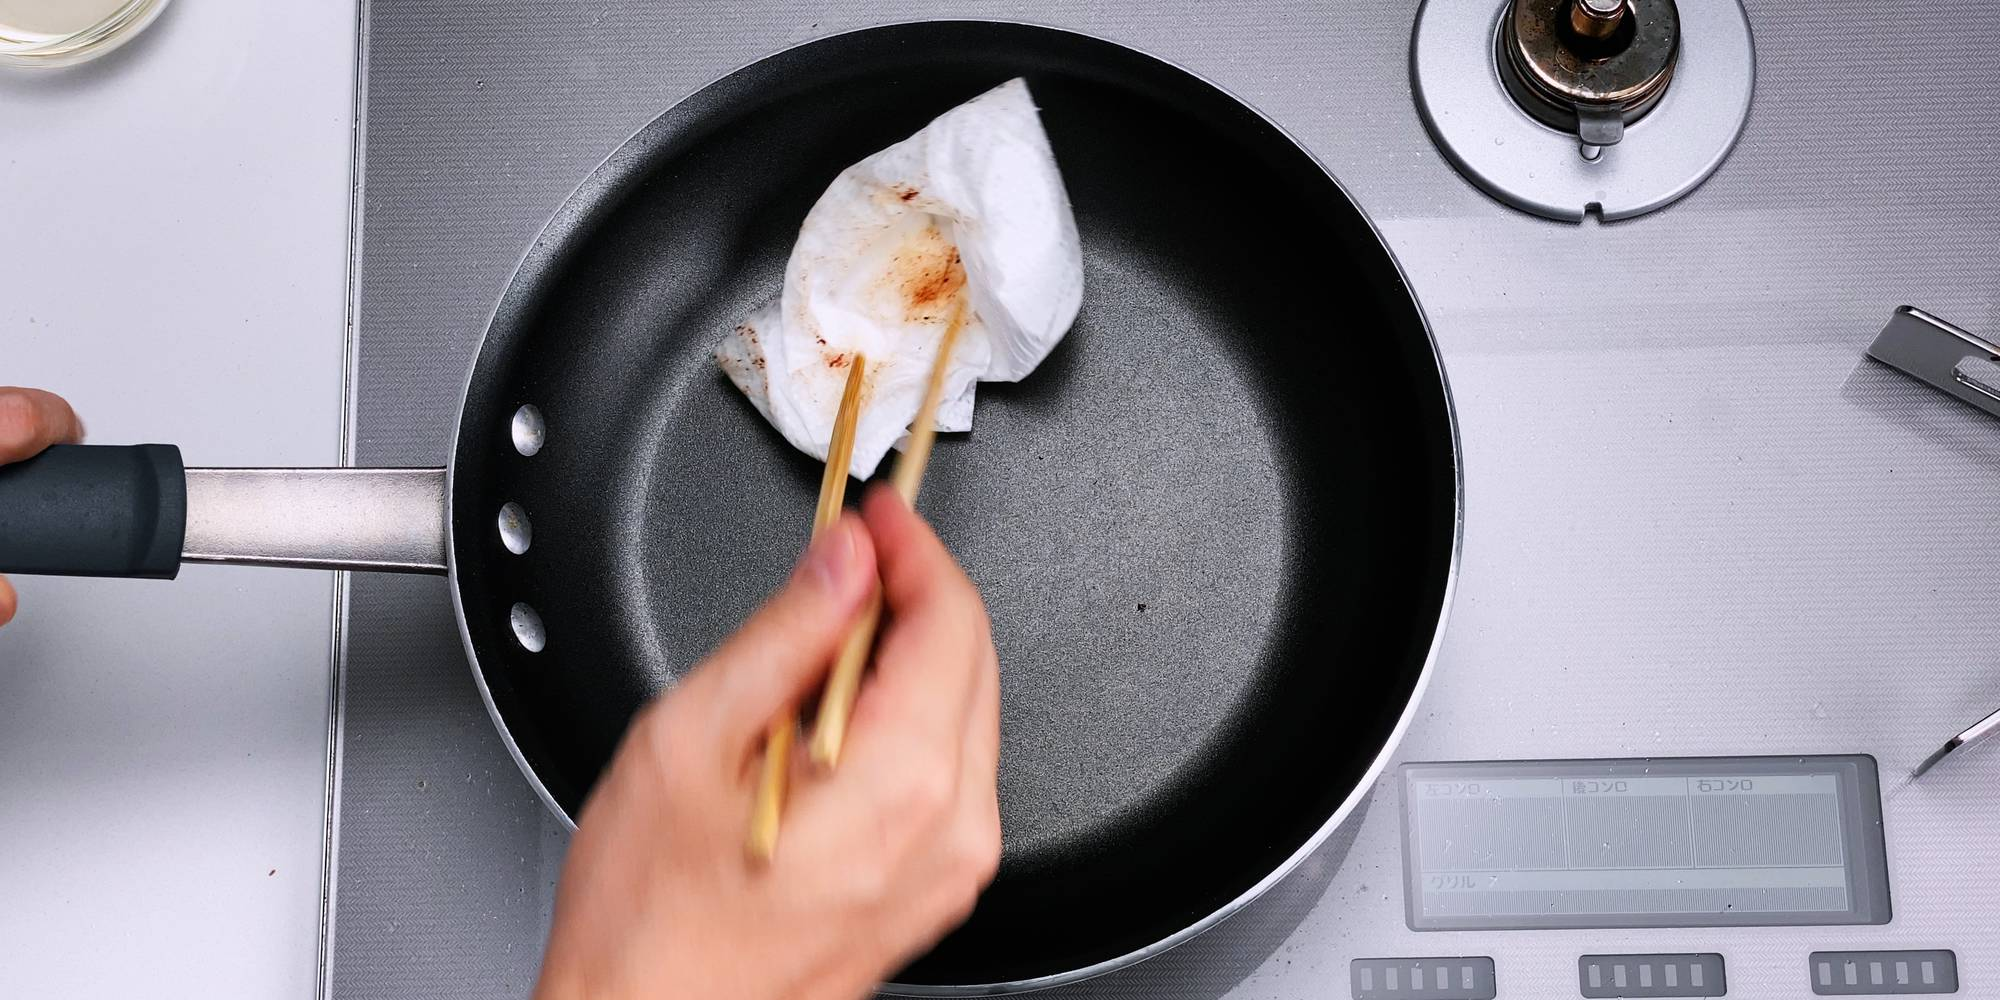 Wiping out oil and debris from frying pan with paper towels.